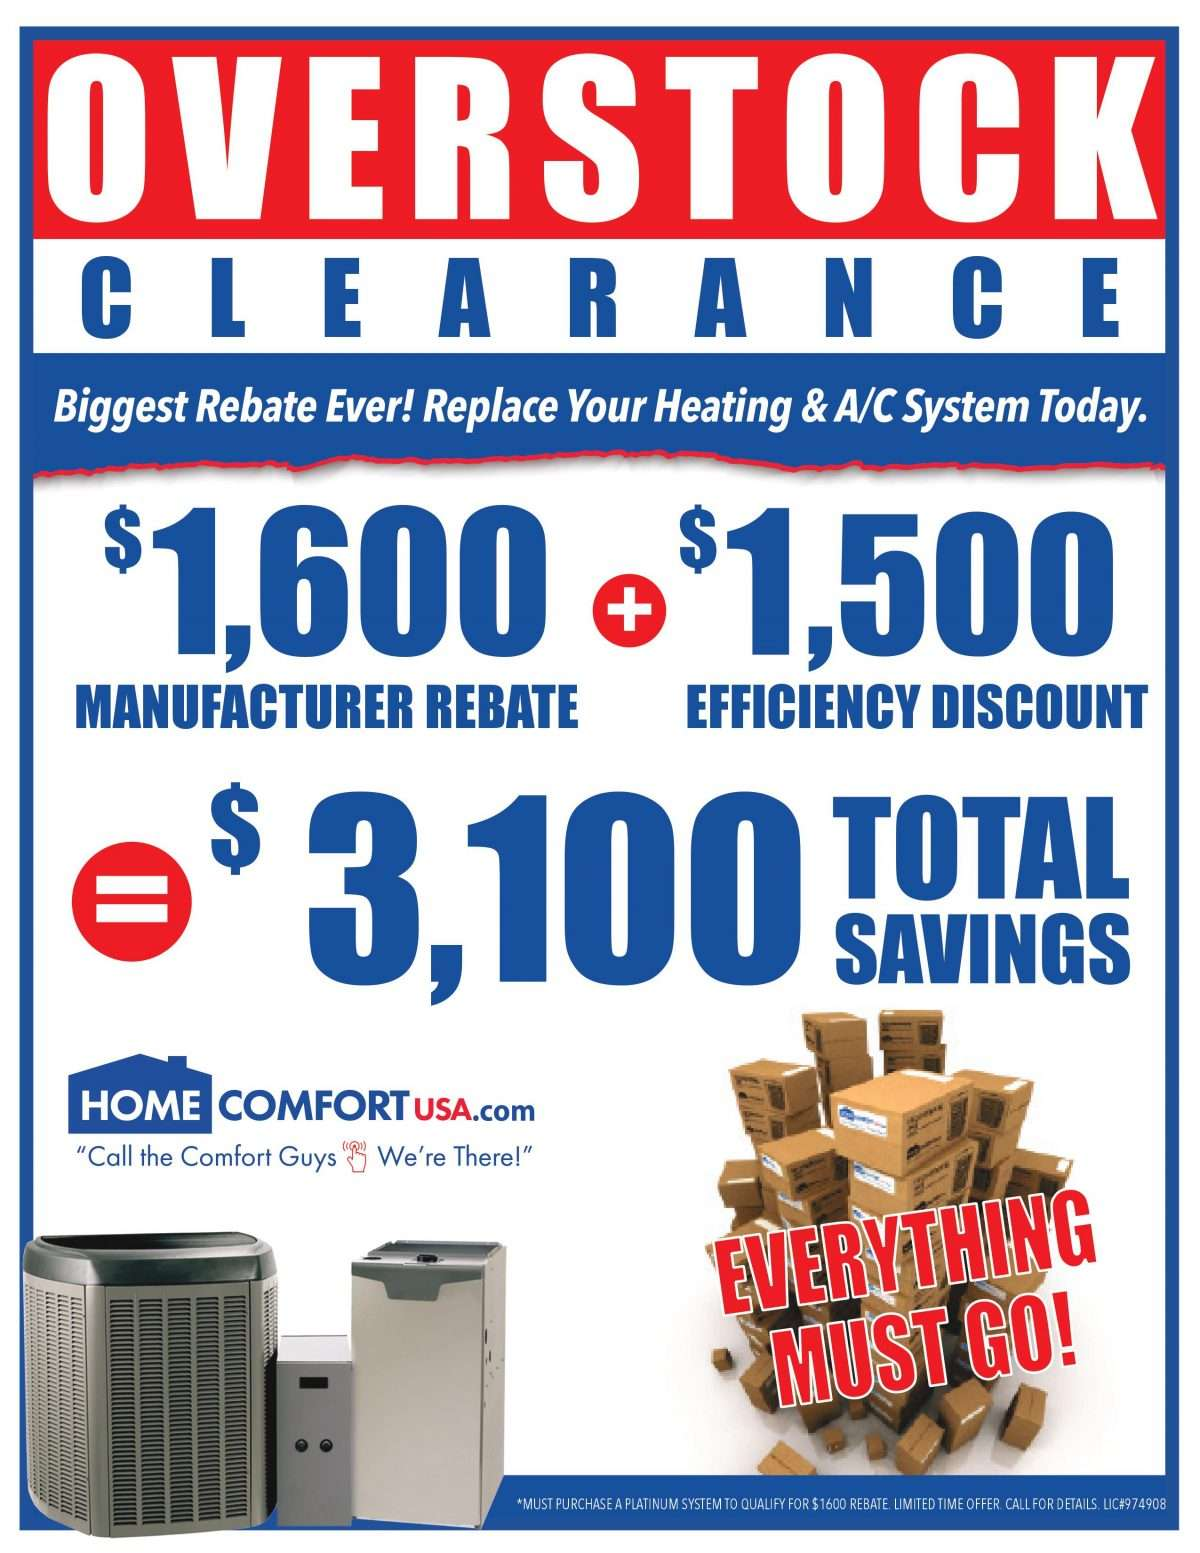 Promotion for overstock clearance